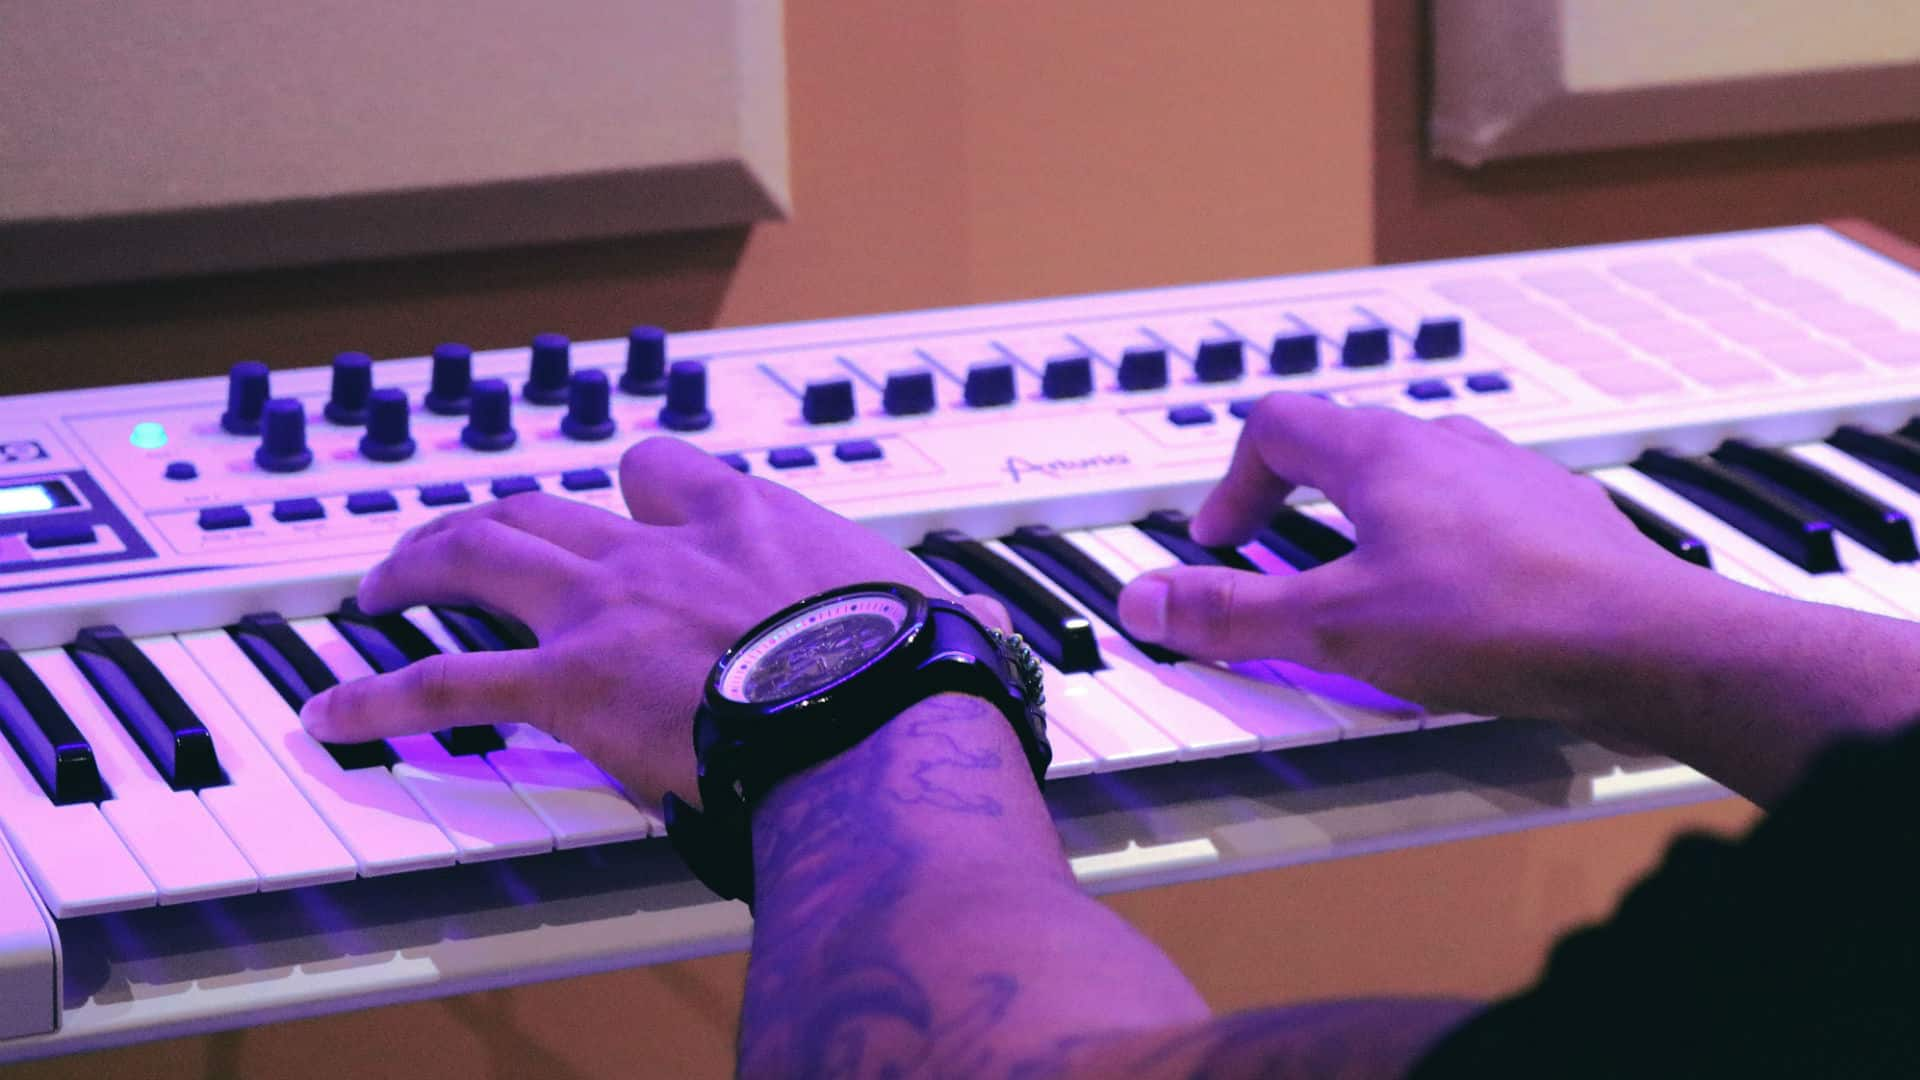 Choosing The Best MIDI Keyboard Controller For Your Studio